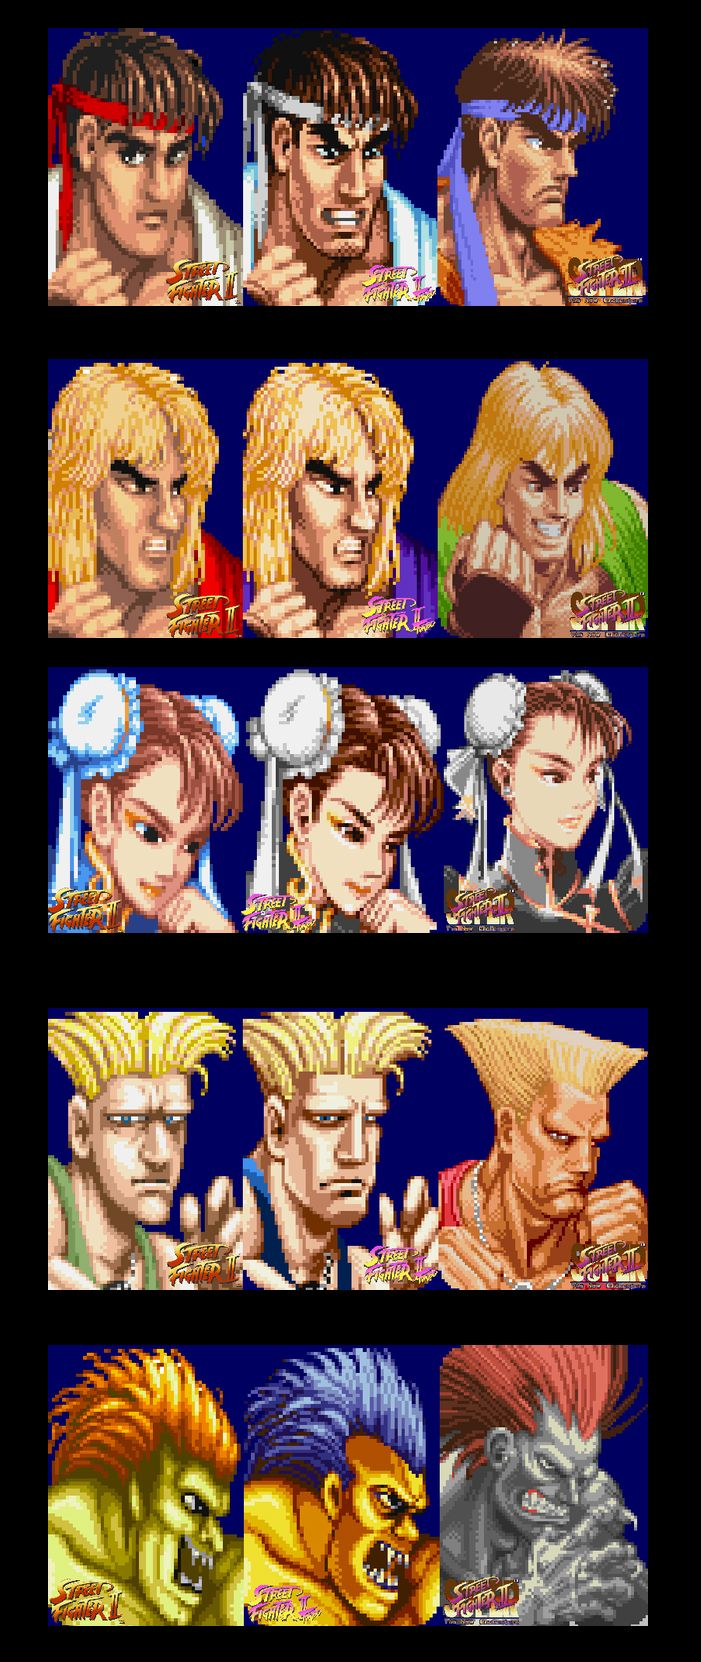 Street Fighter 2 character portrait Evolutions From WW to Turbo to Super